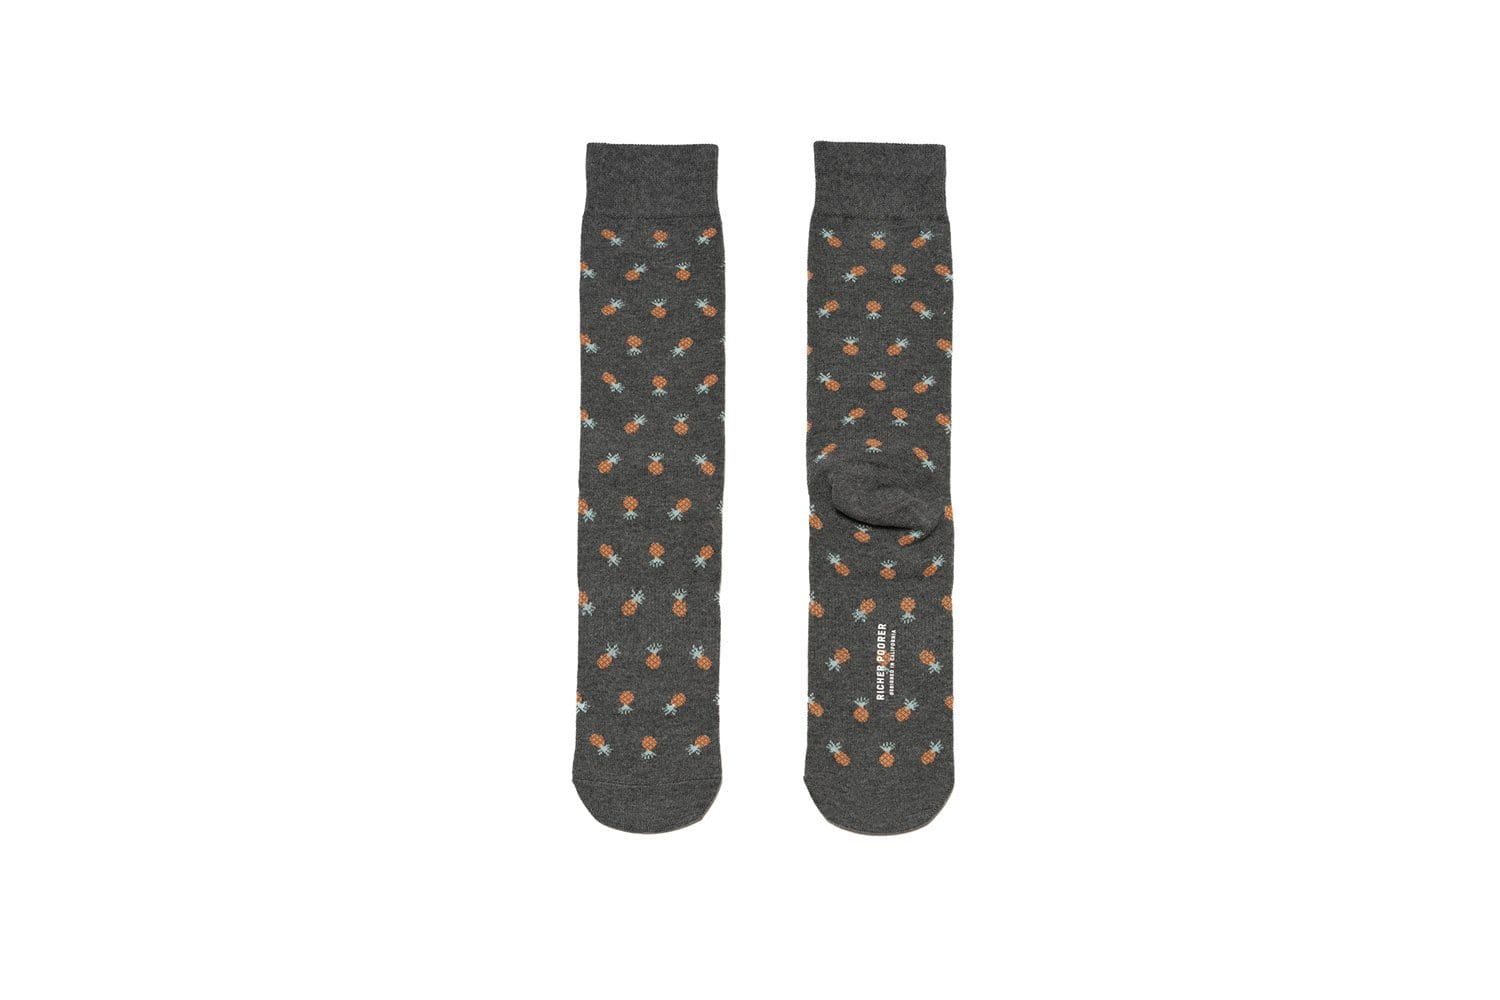 Mens Crew Socks - Pineapple Charcoal